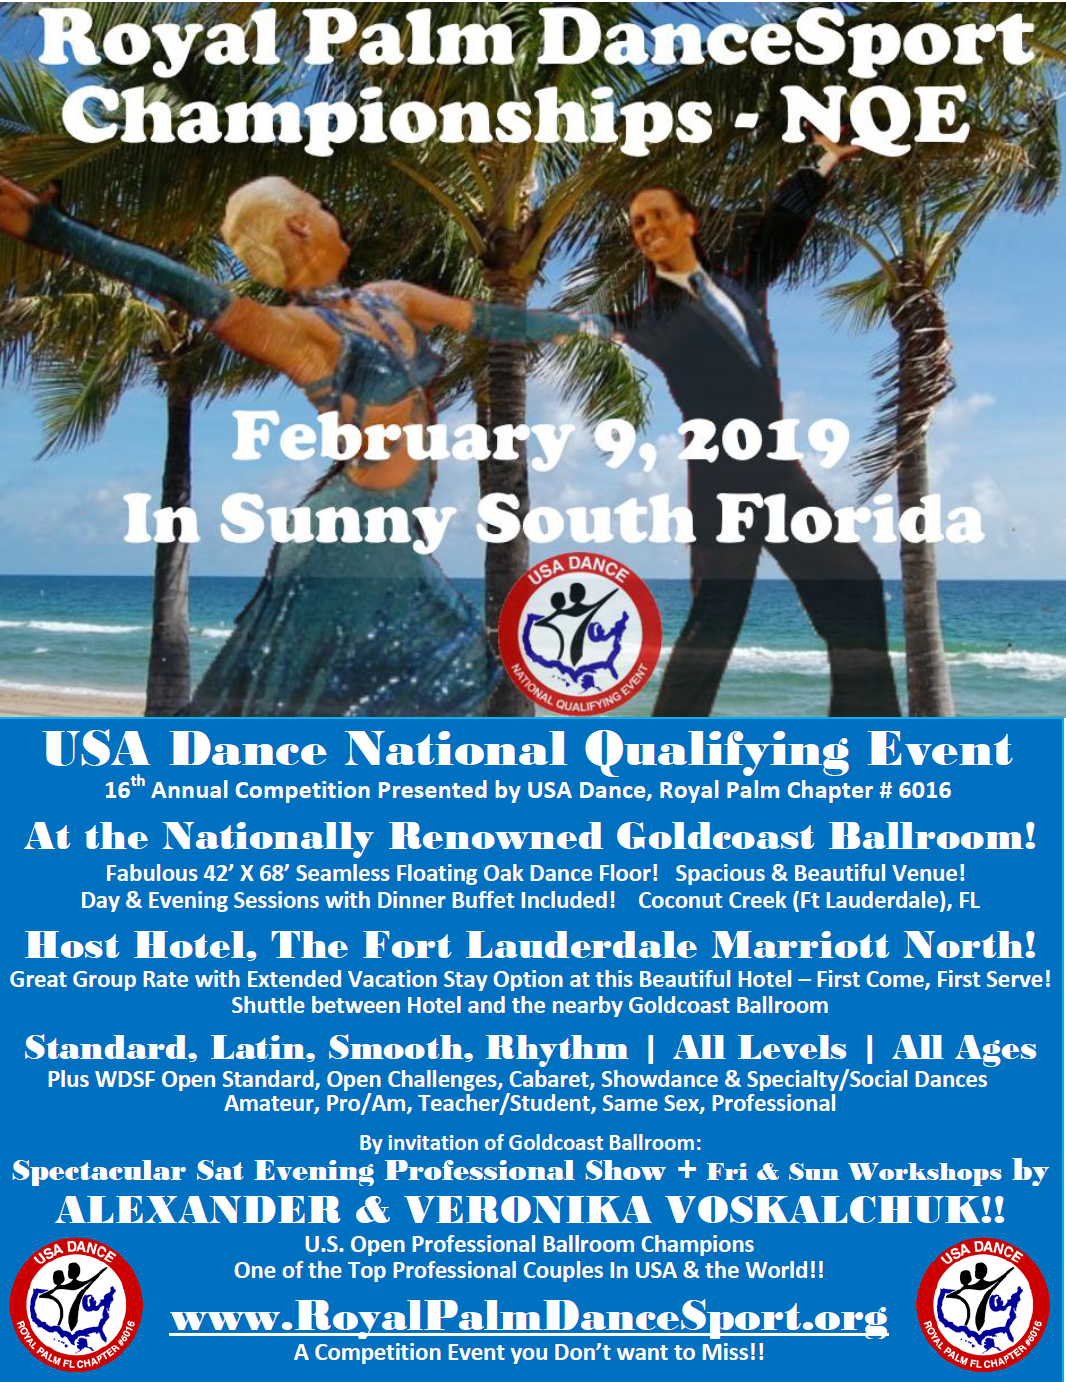 Royal Palm DanceSport Championships NQE & WDSF Open - February 9, 2019